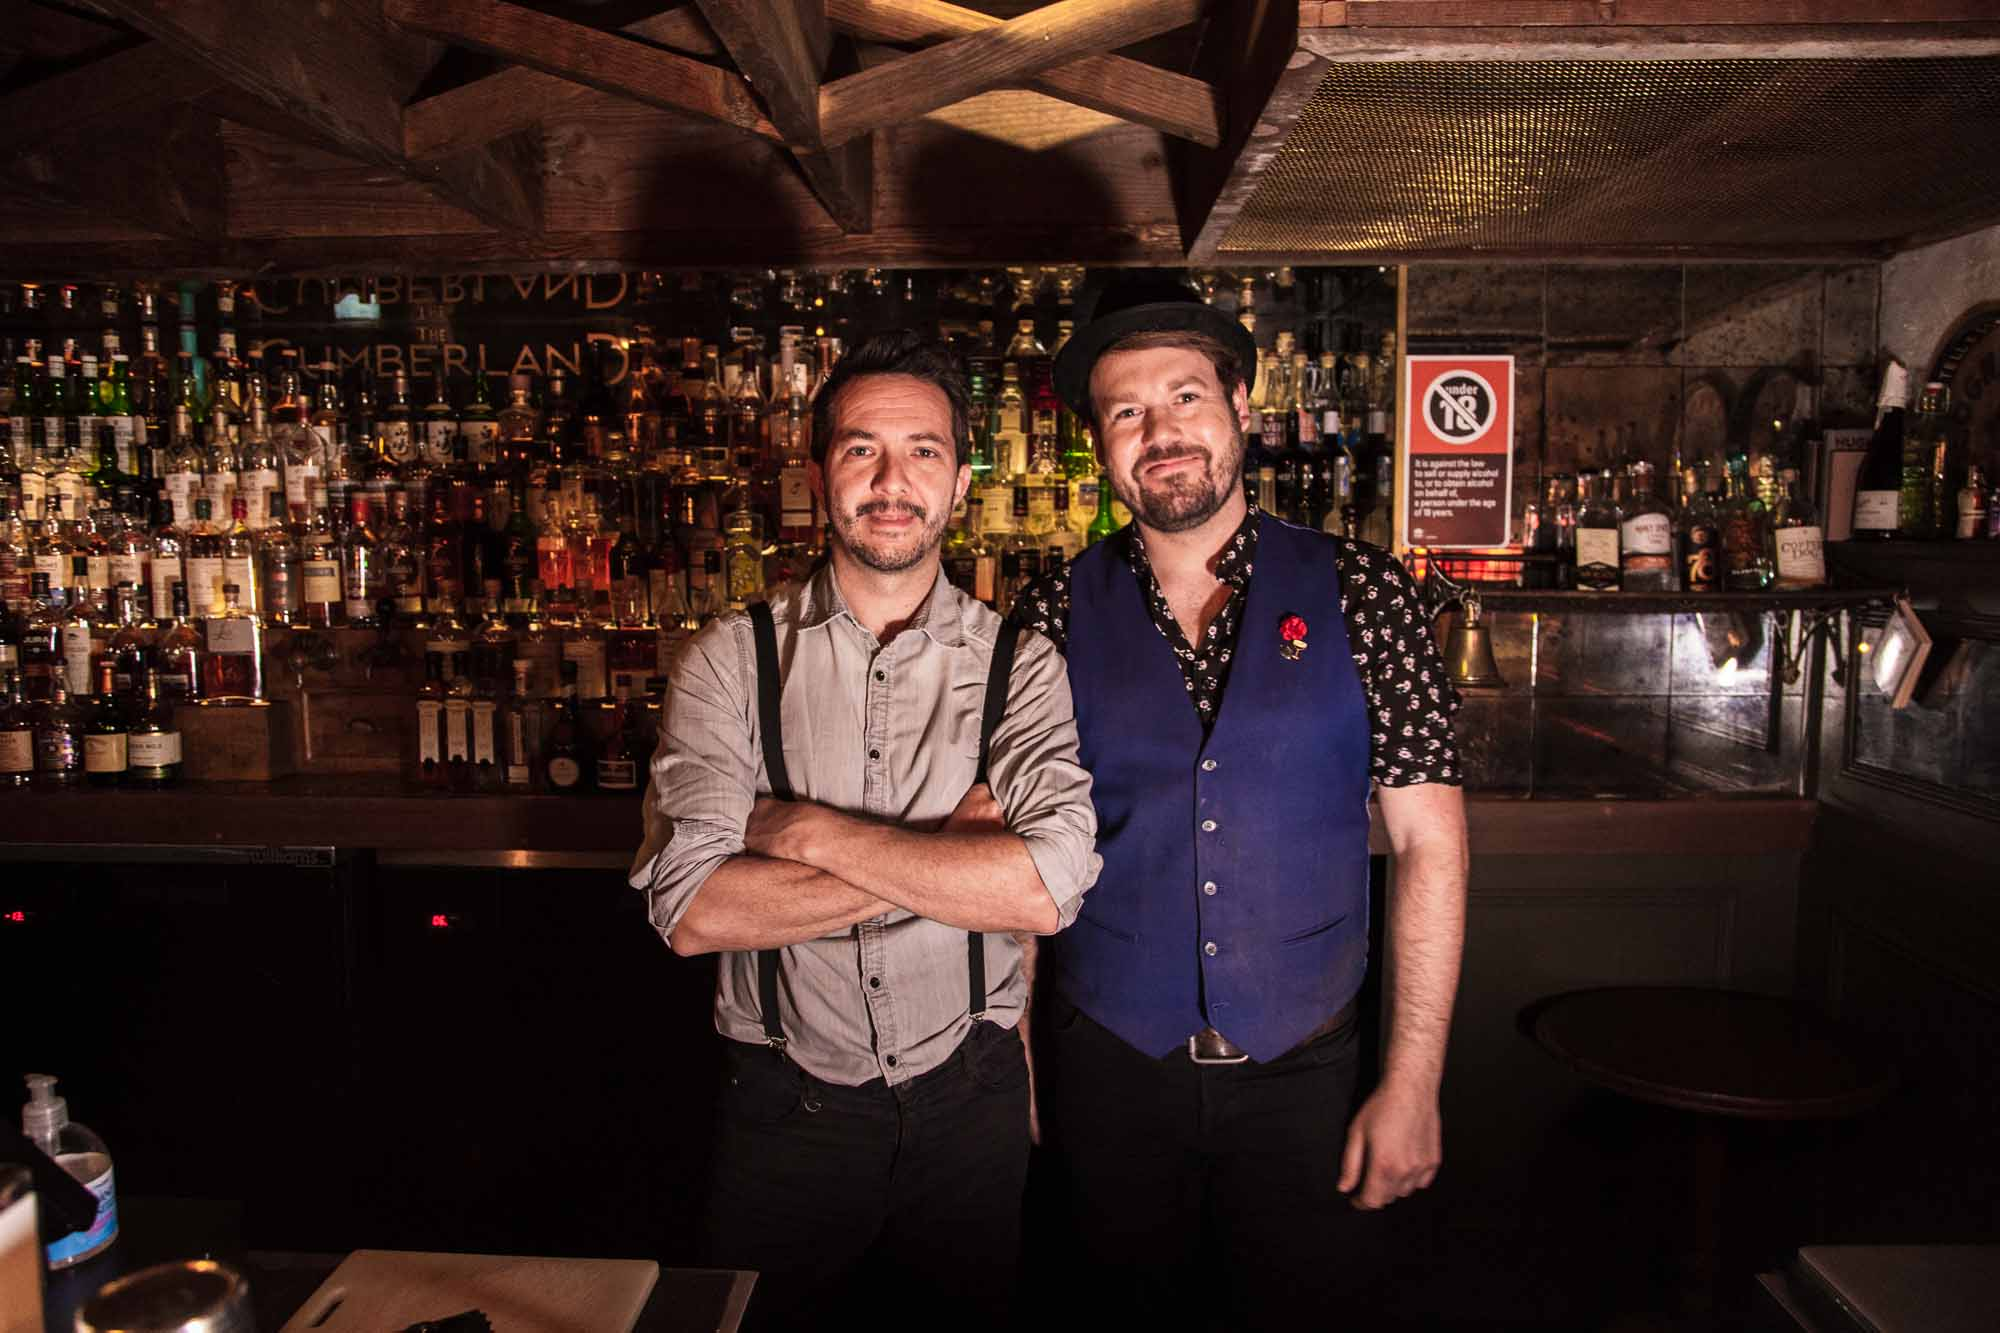 Pete Ehemann (right) with The Cumberland bar manager Petr Dvoracek. Photo: Boothby